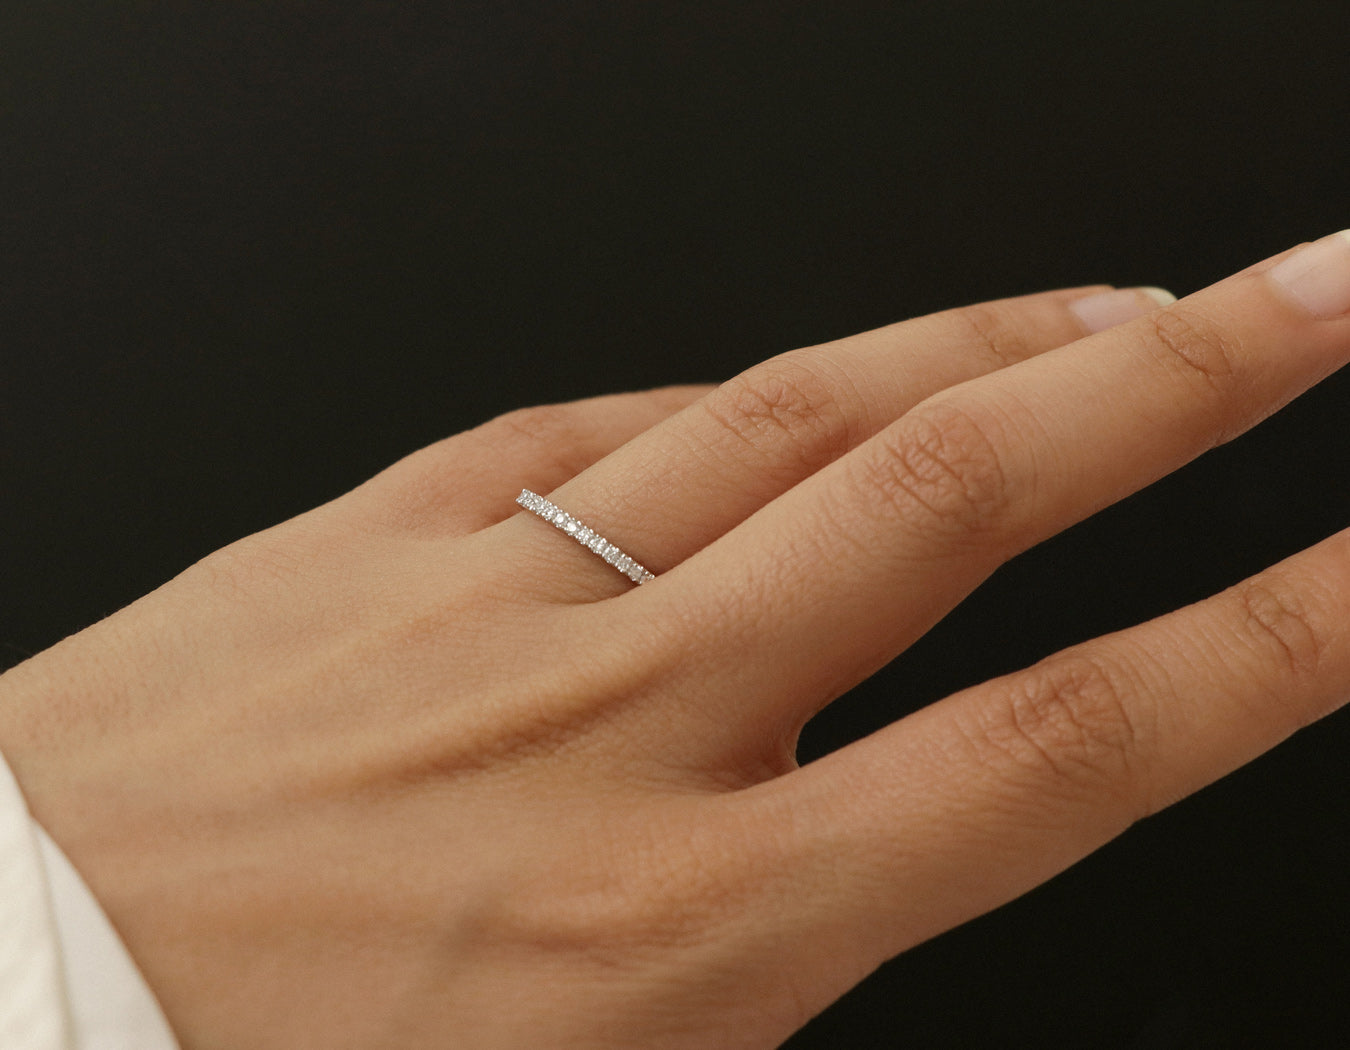 simple modern Vrai & Oro Petite Diamond Band in 14k white gold zoomed on hand